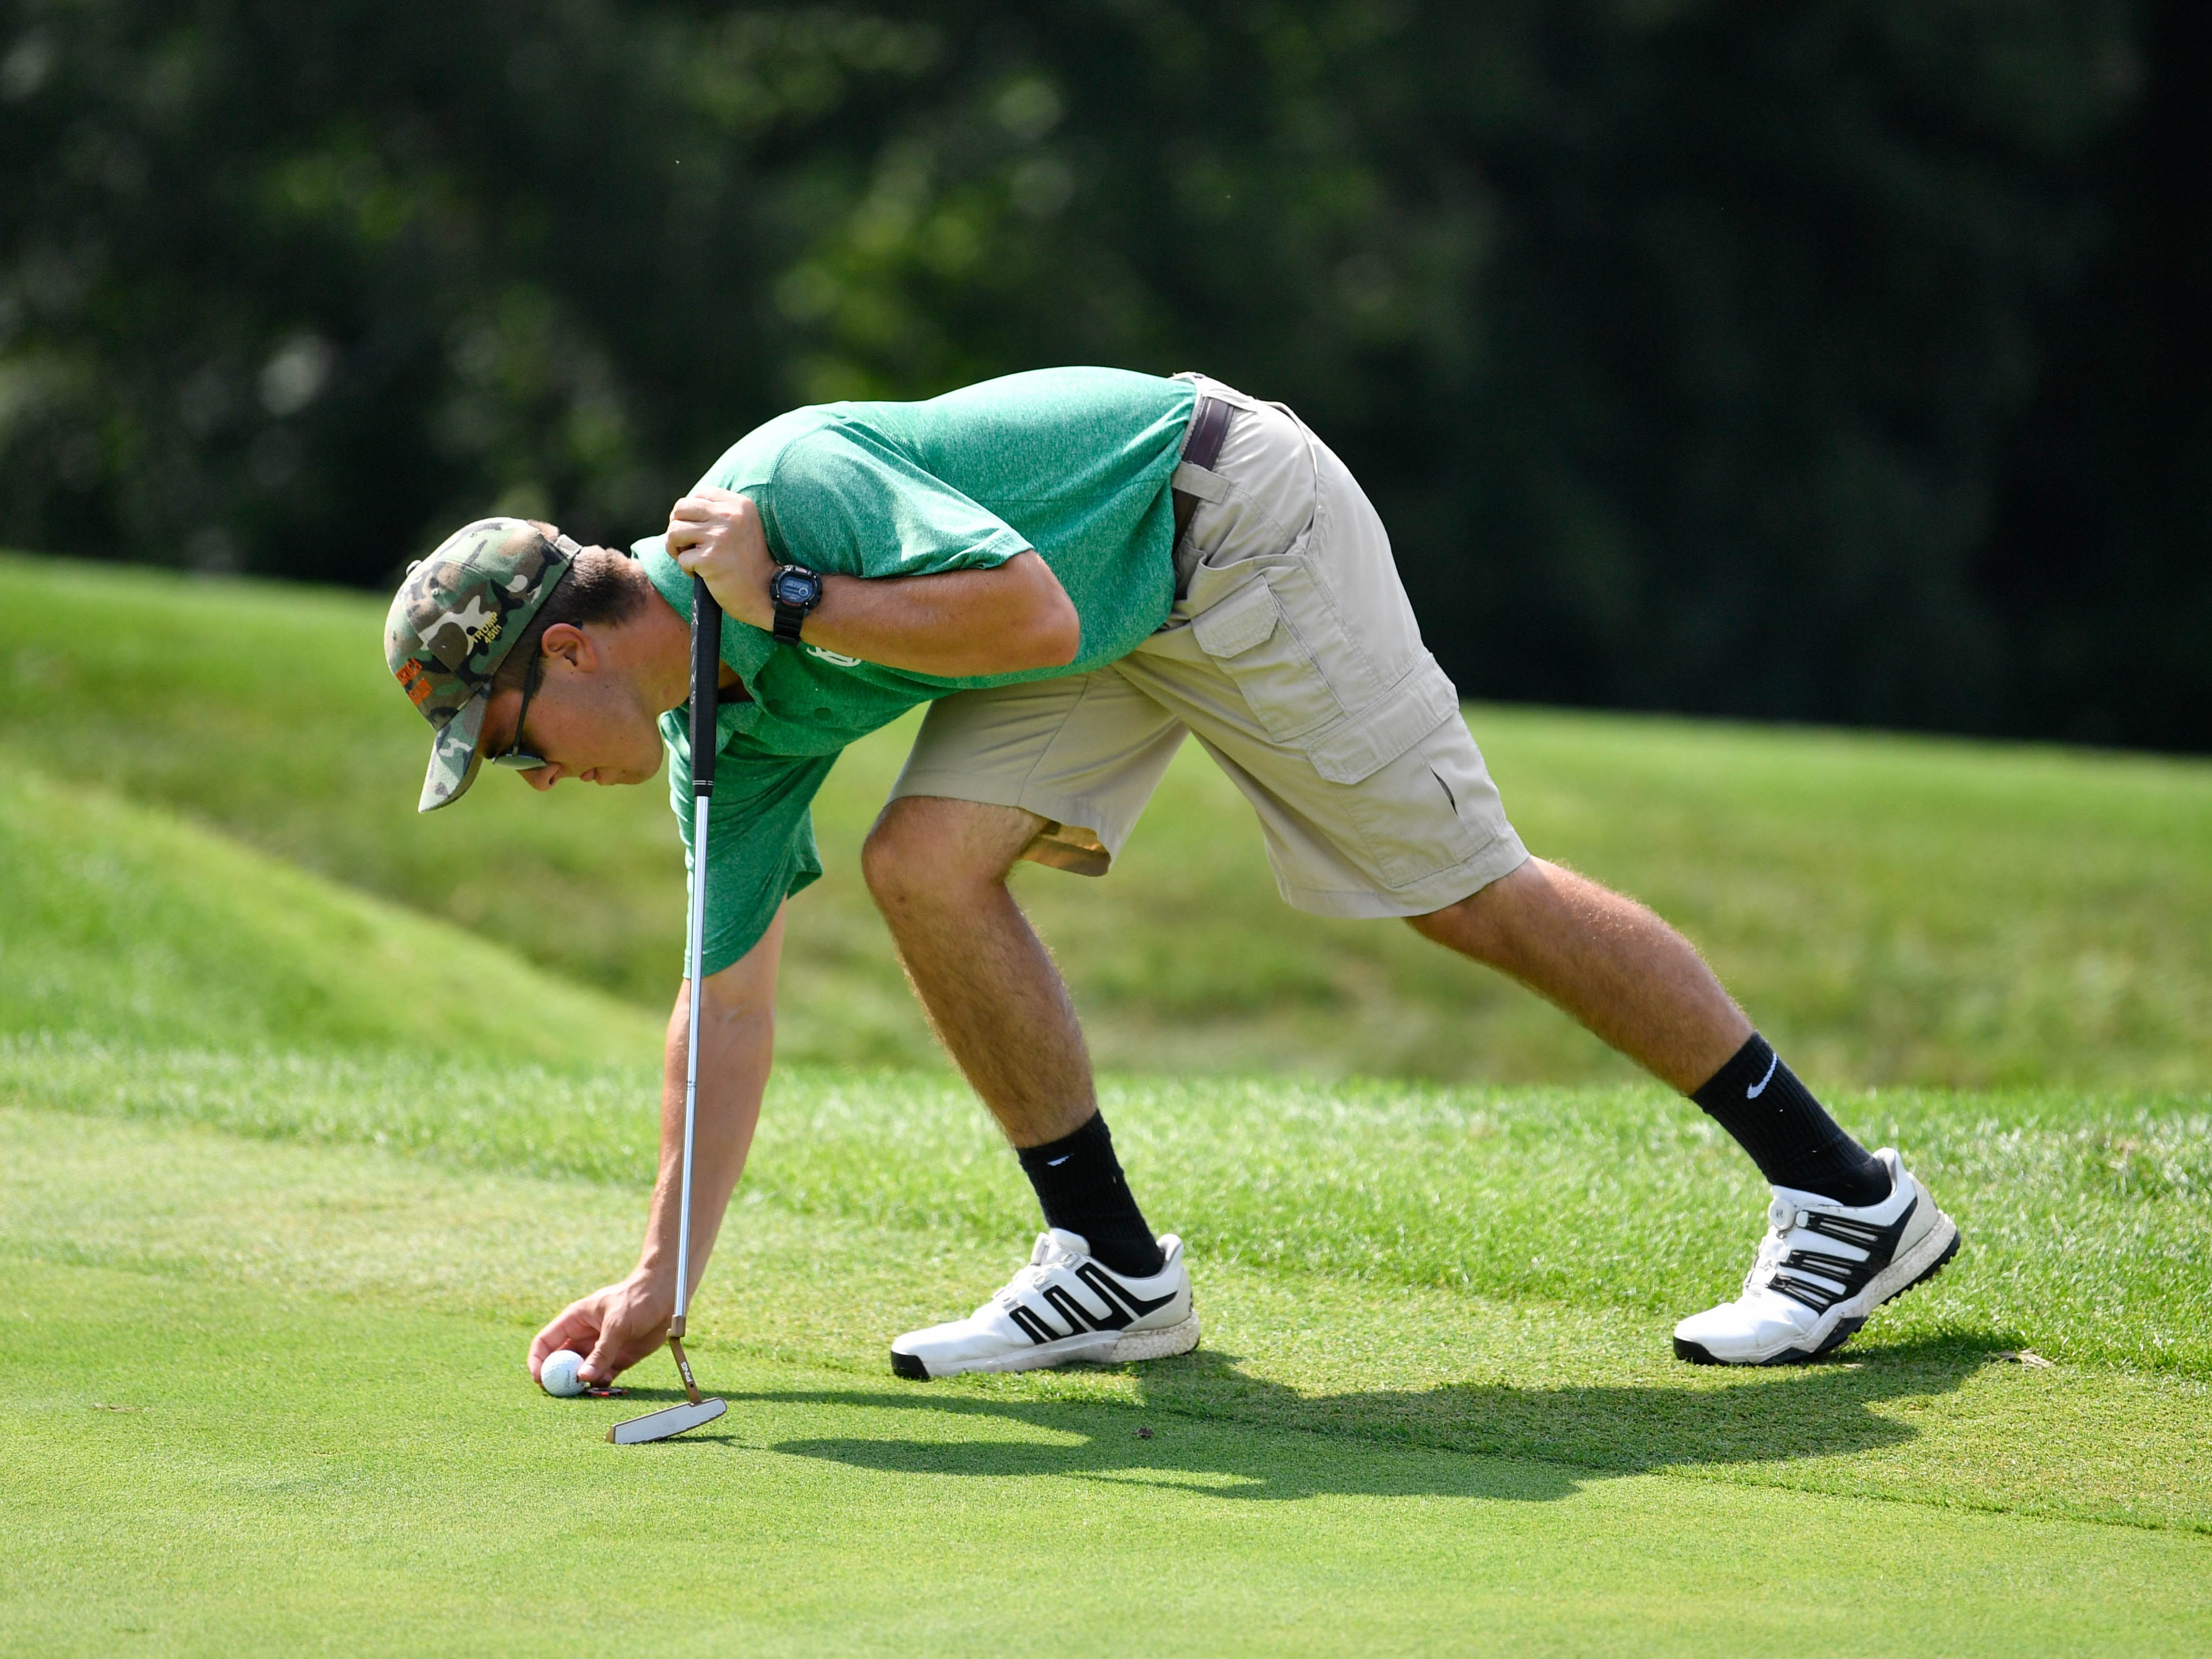 Ben Andrasi of York Catholic High School sets up for the putt during a division III golf match at Regents Glen Country Club on August 28.